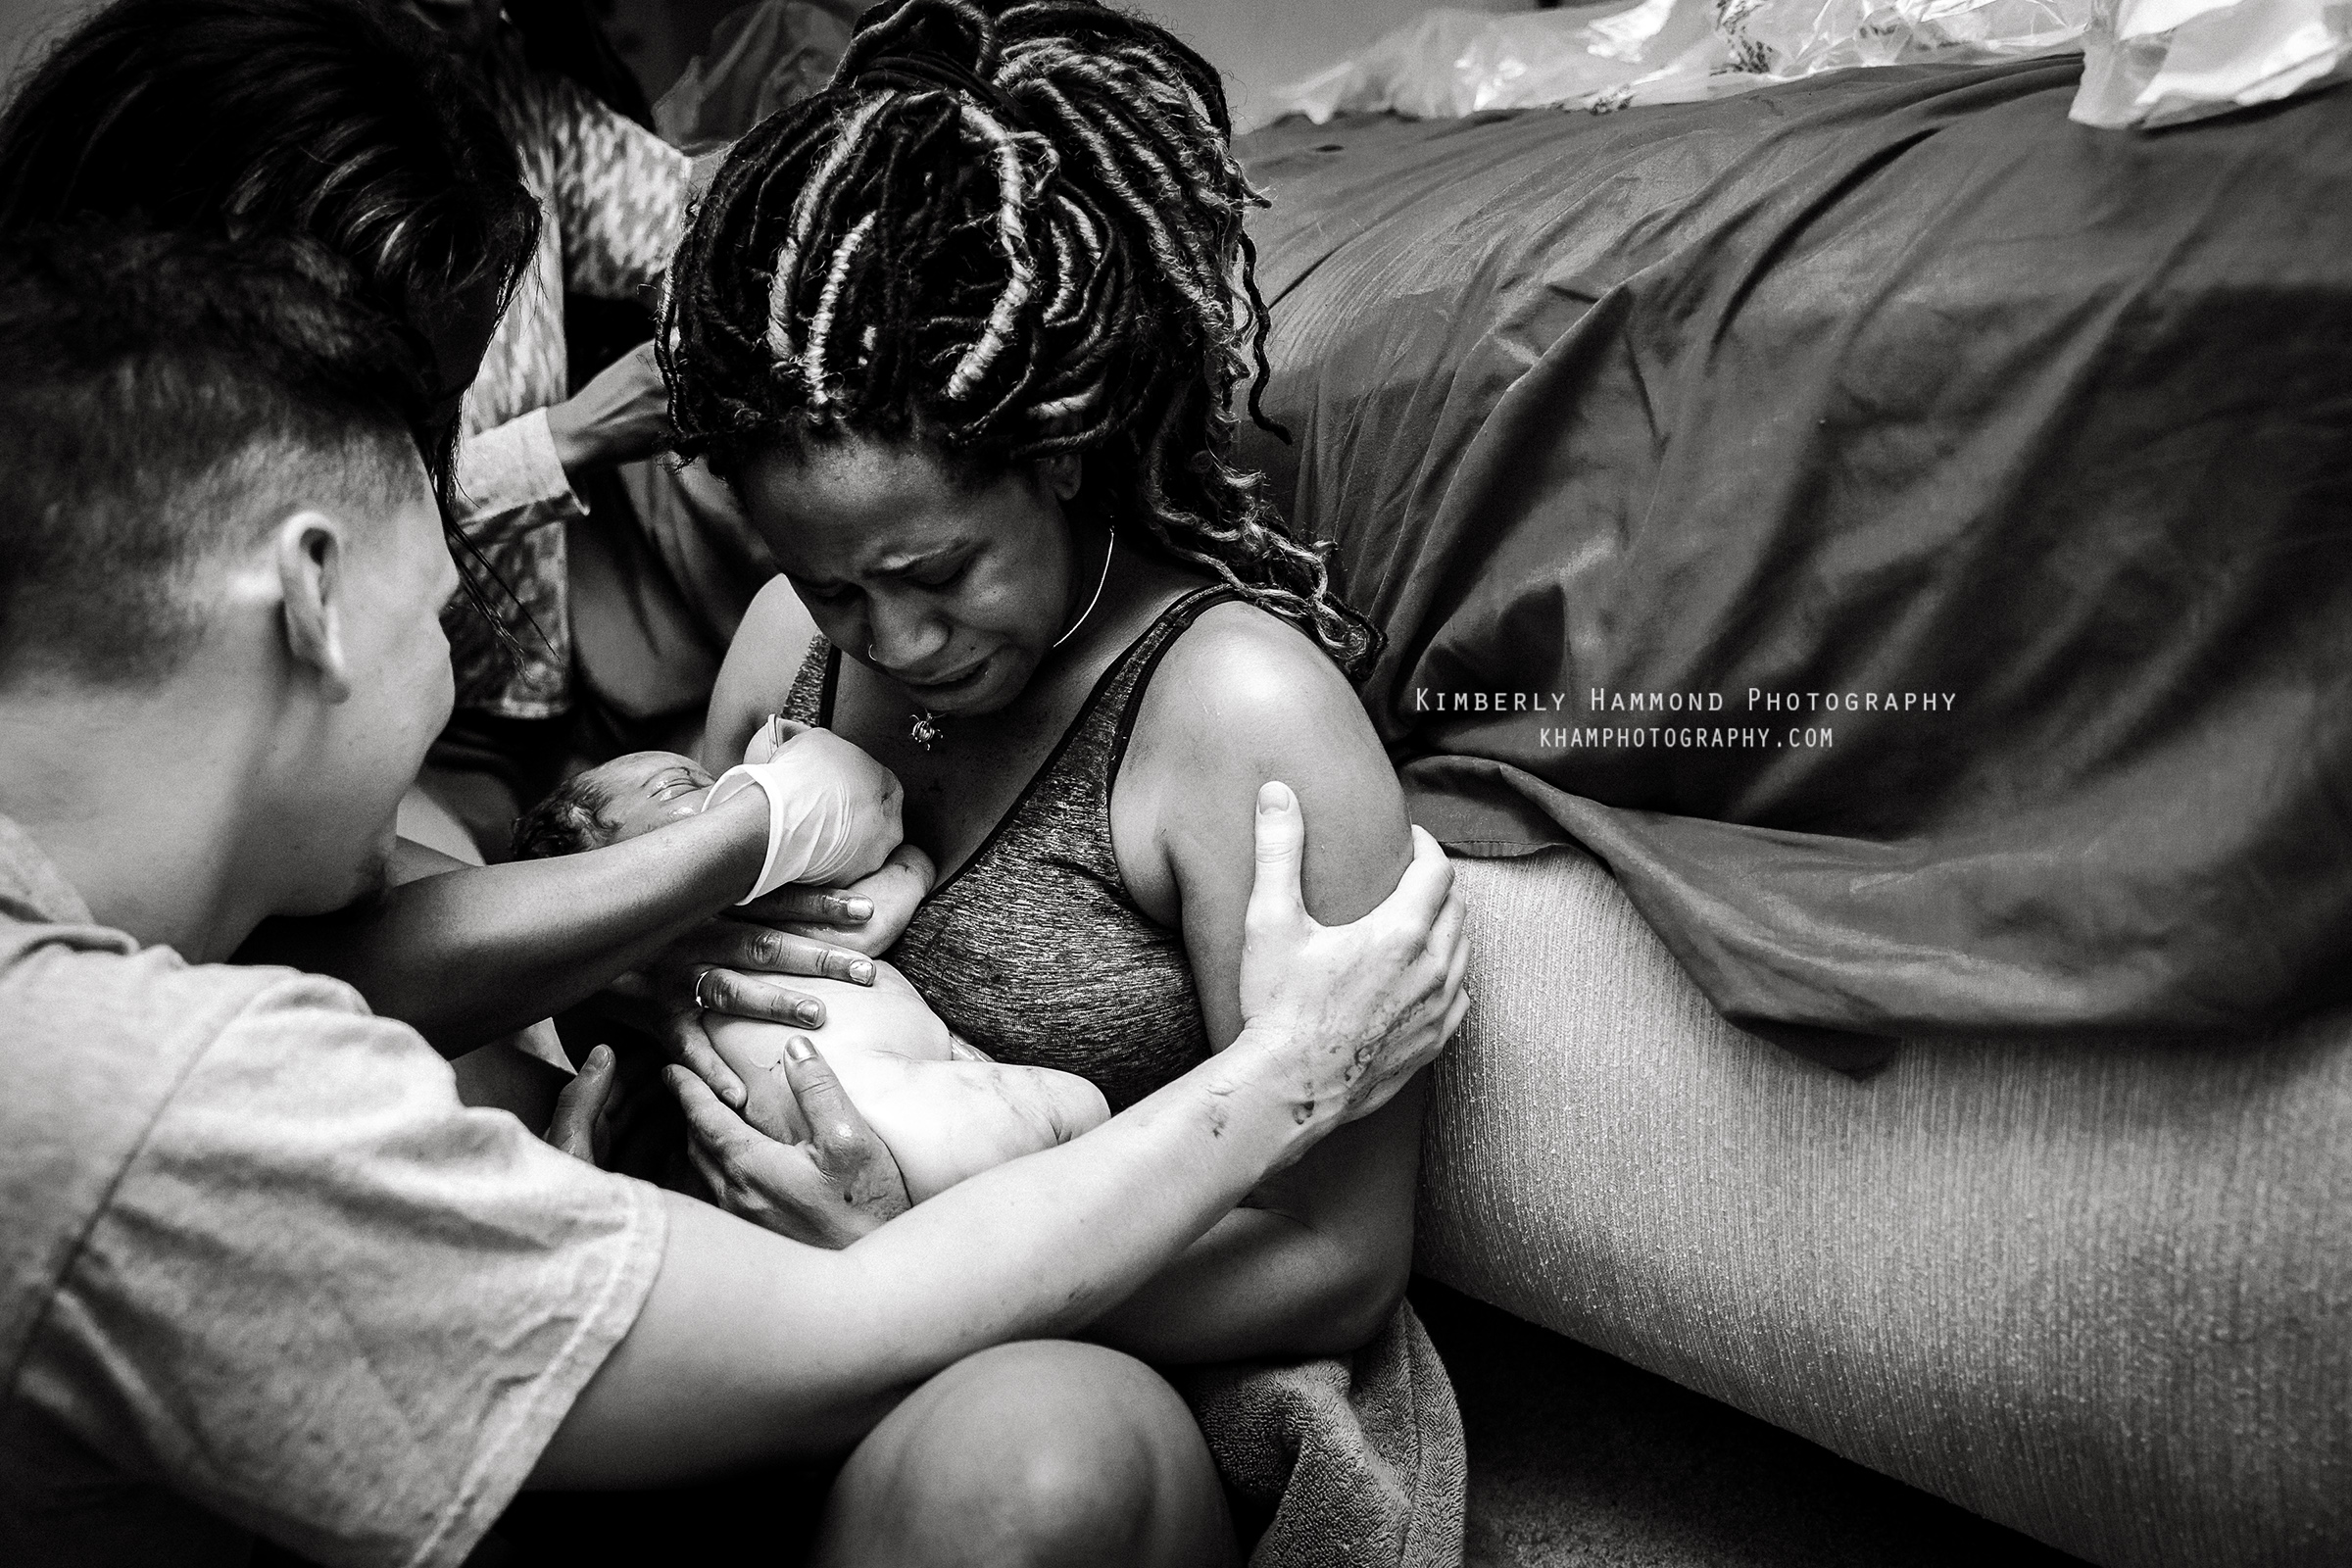 Father embraces mother after the birth of their baby at home in Fort Worth, Texas.